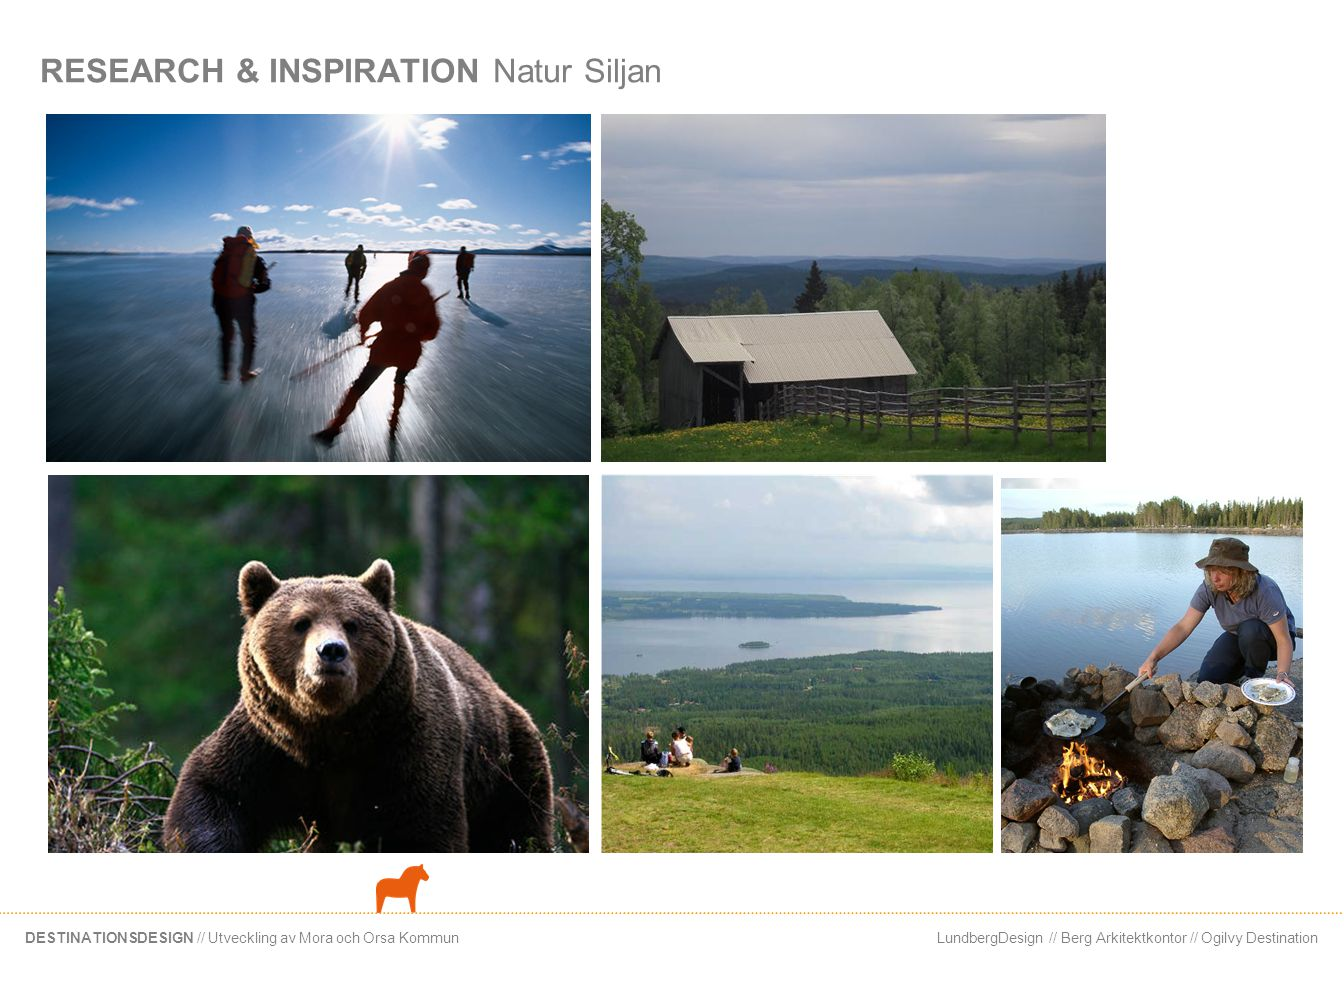 RESEARCH & INSPIRATION Natur Siljan